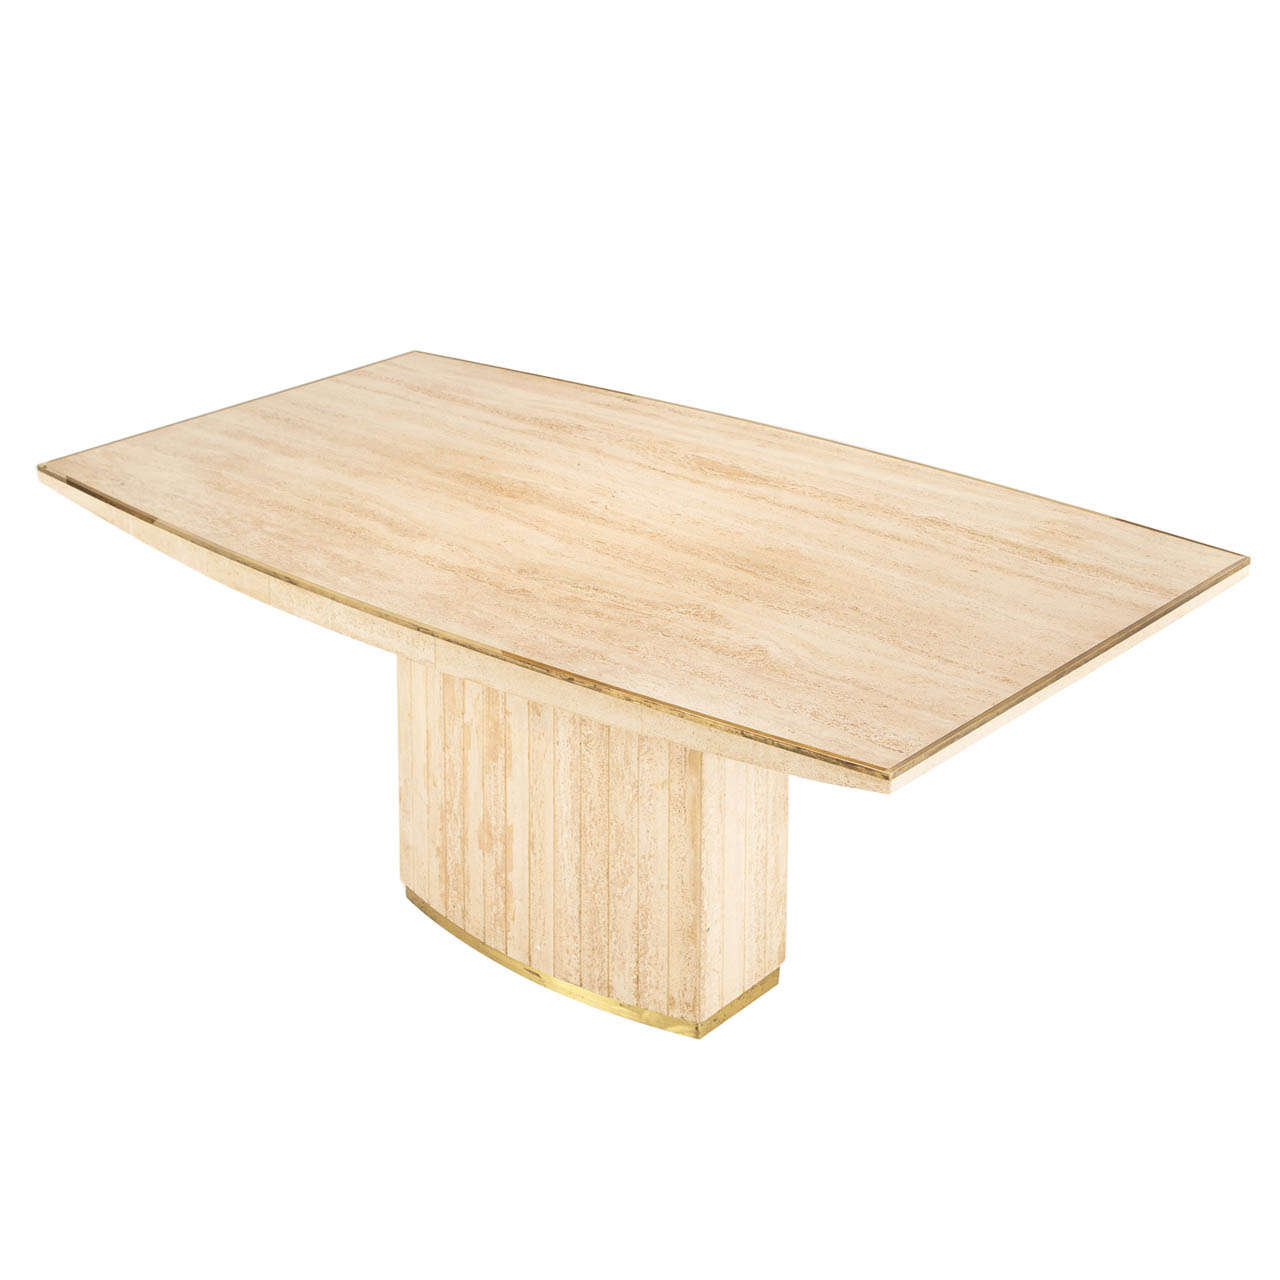 Willy rizzo table in travertine at 1stdibs for Table willy rizzo